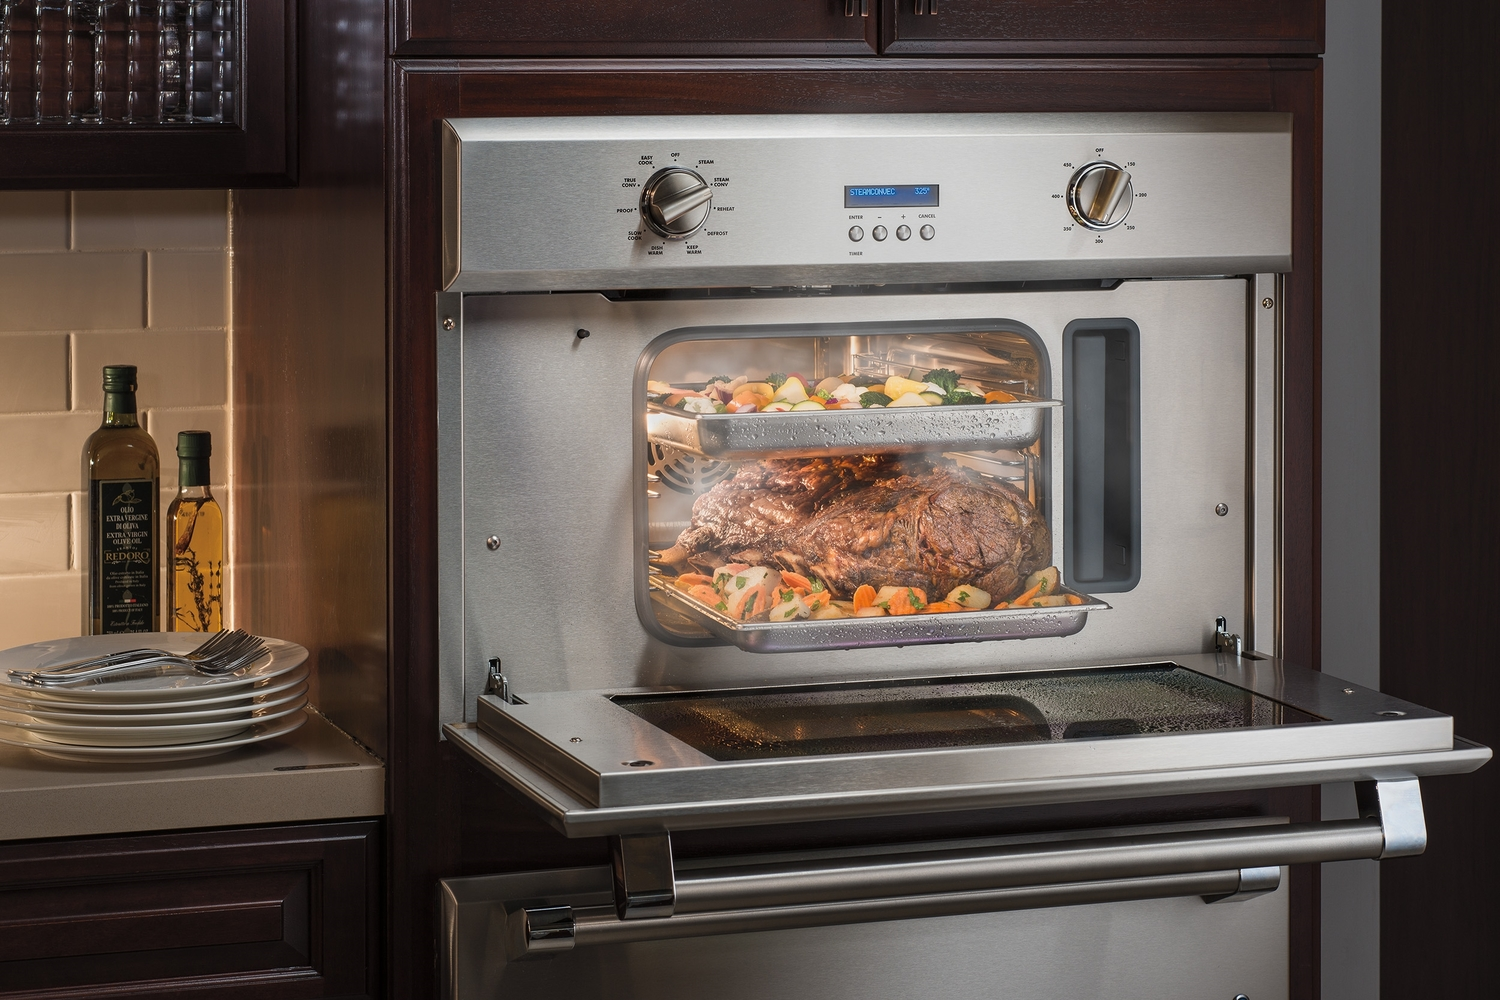 warm open oven in home